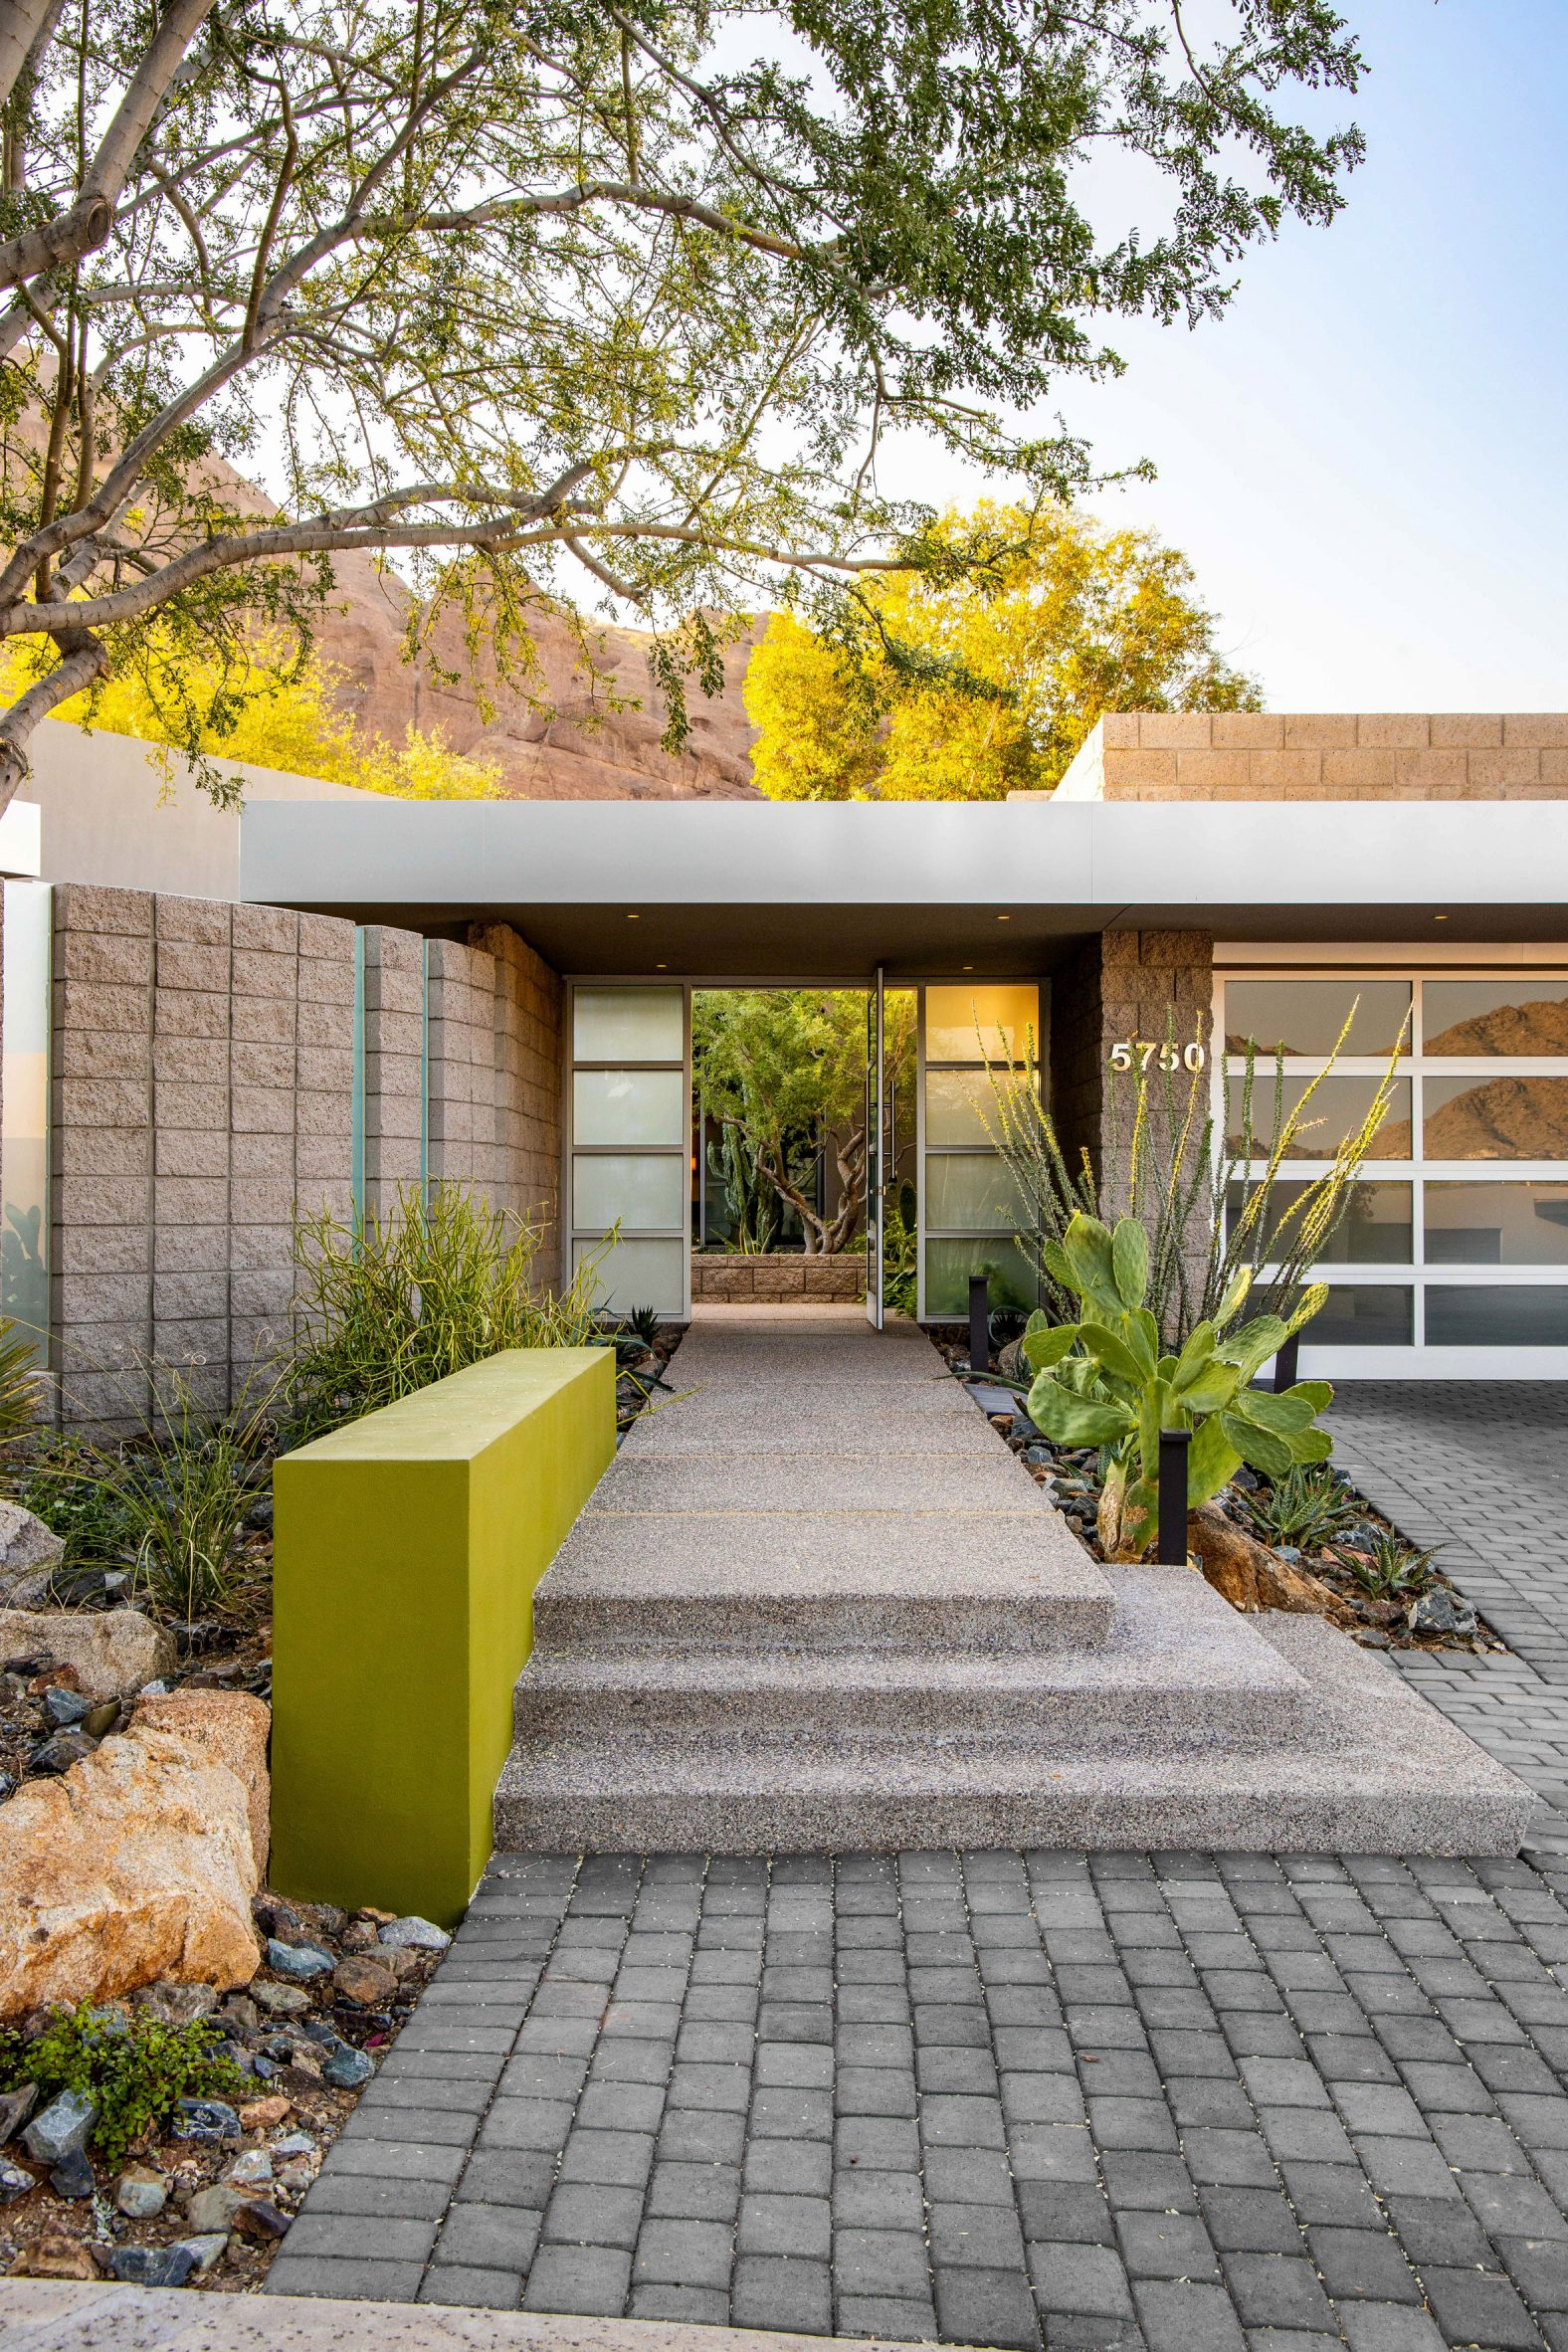 The house by Kendle Design Collaborative is in Arizona